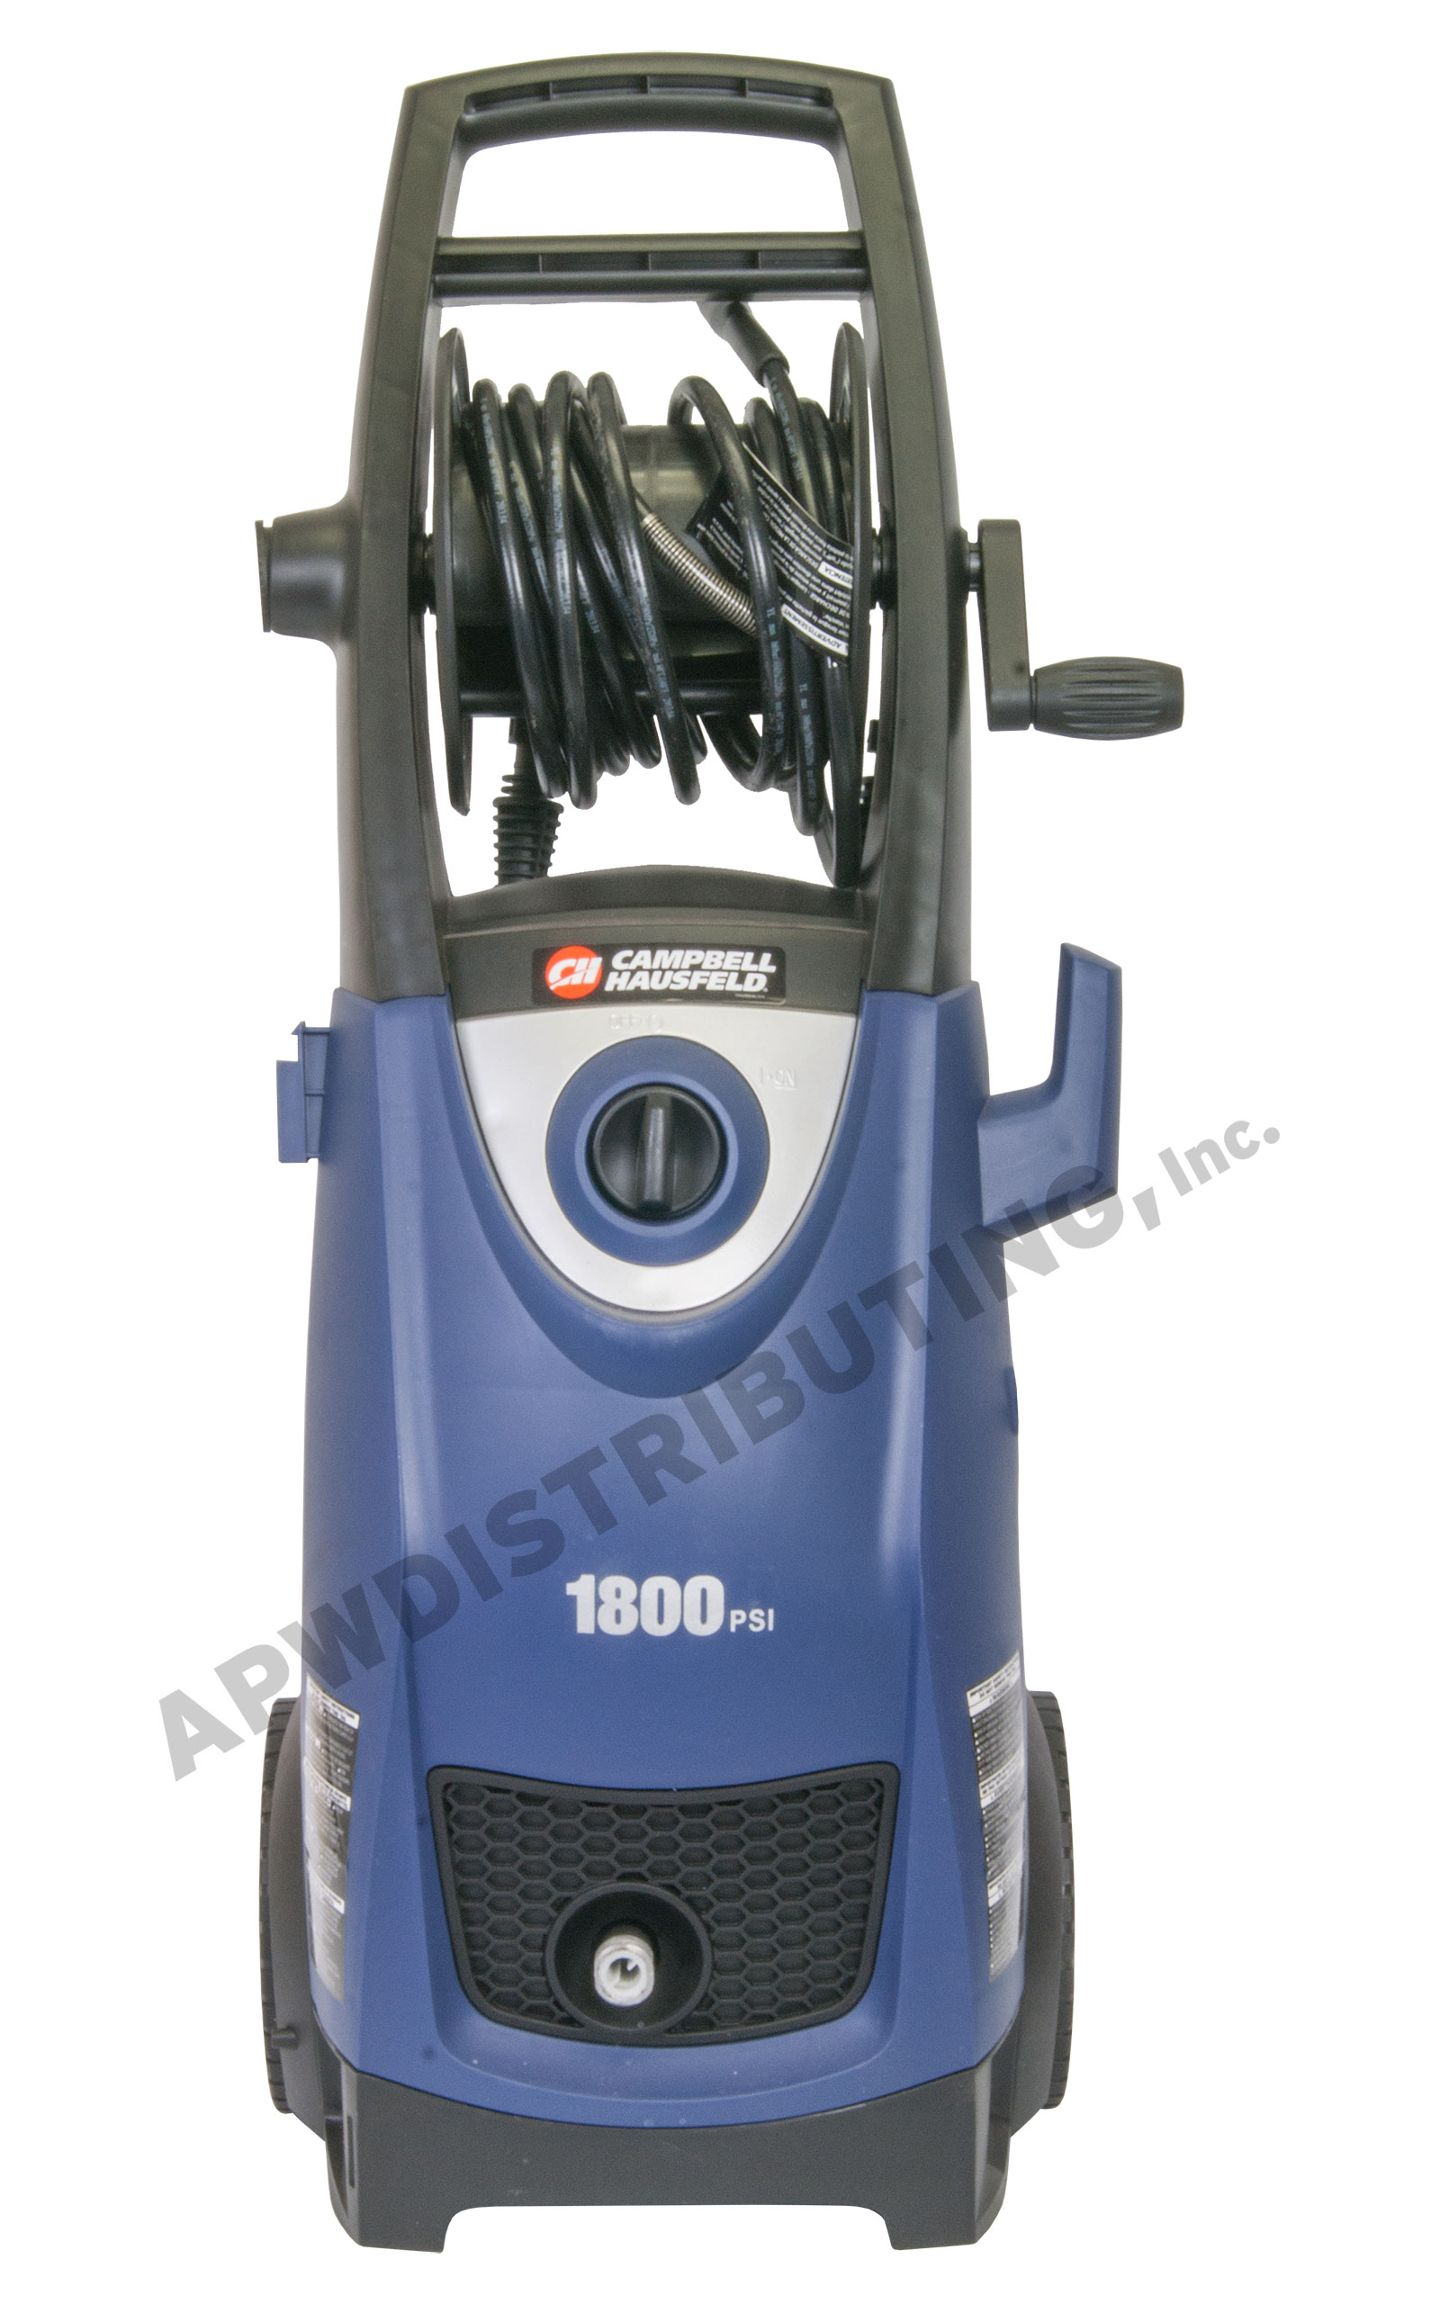 Campbell Hausfeld Pw1835 Pressure Washer Parts